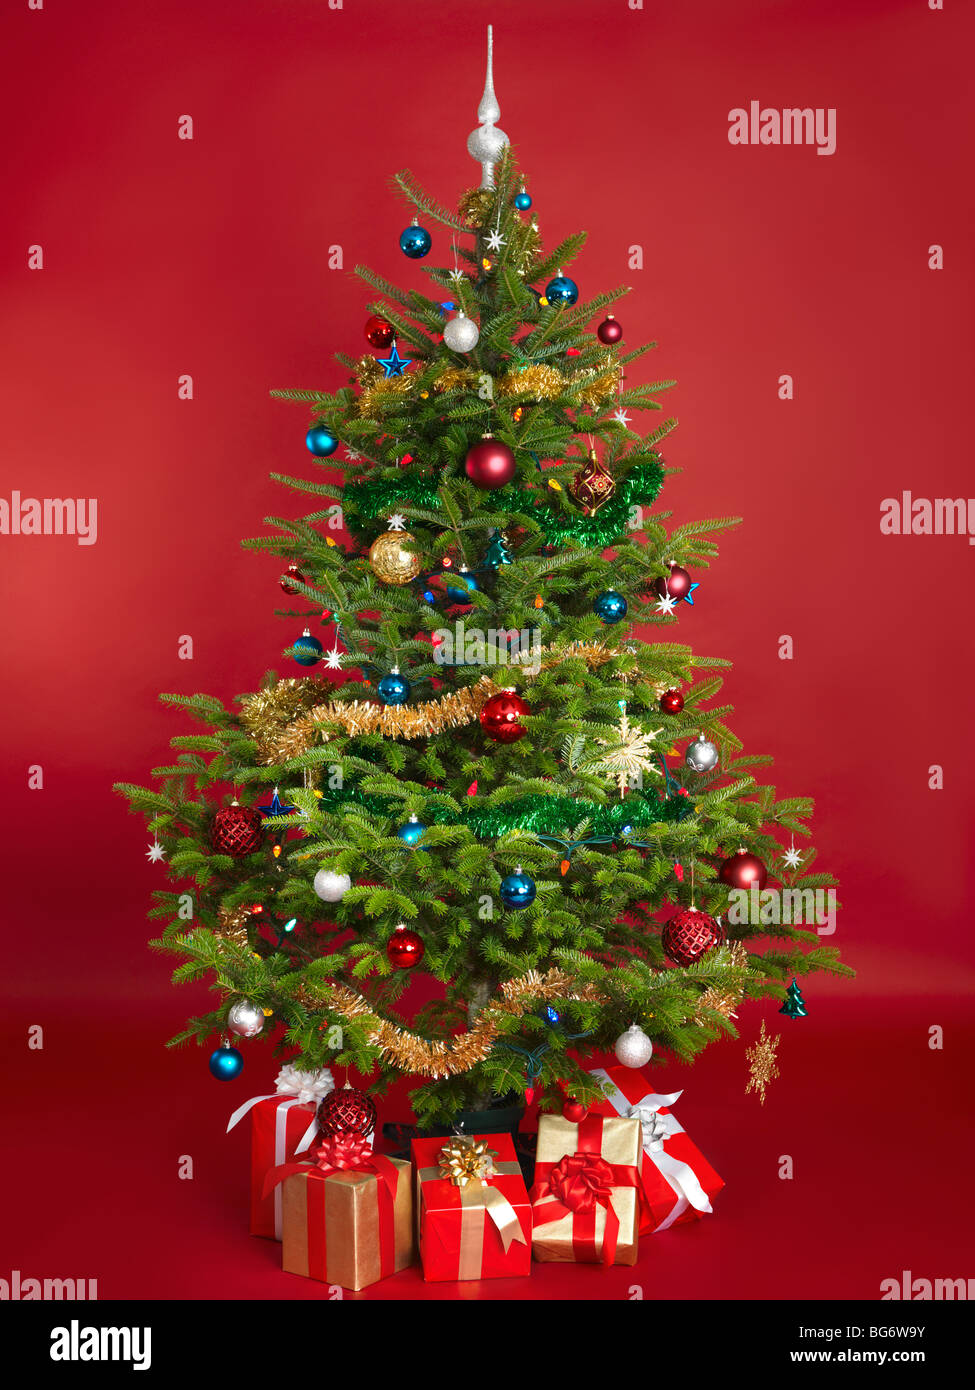 Decorated real Christmas tree isolated on red background - Stock Image